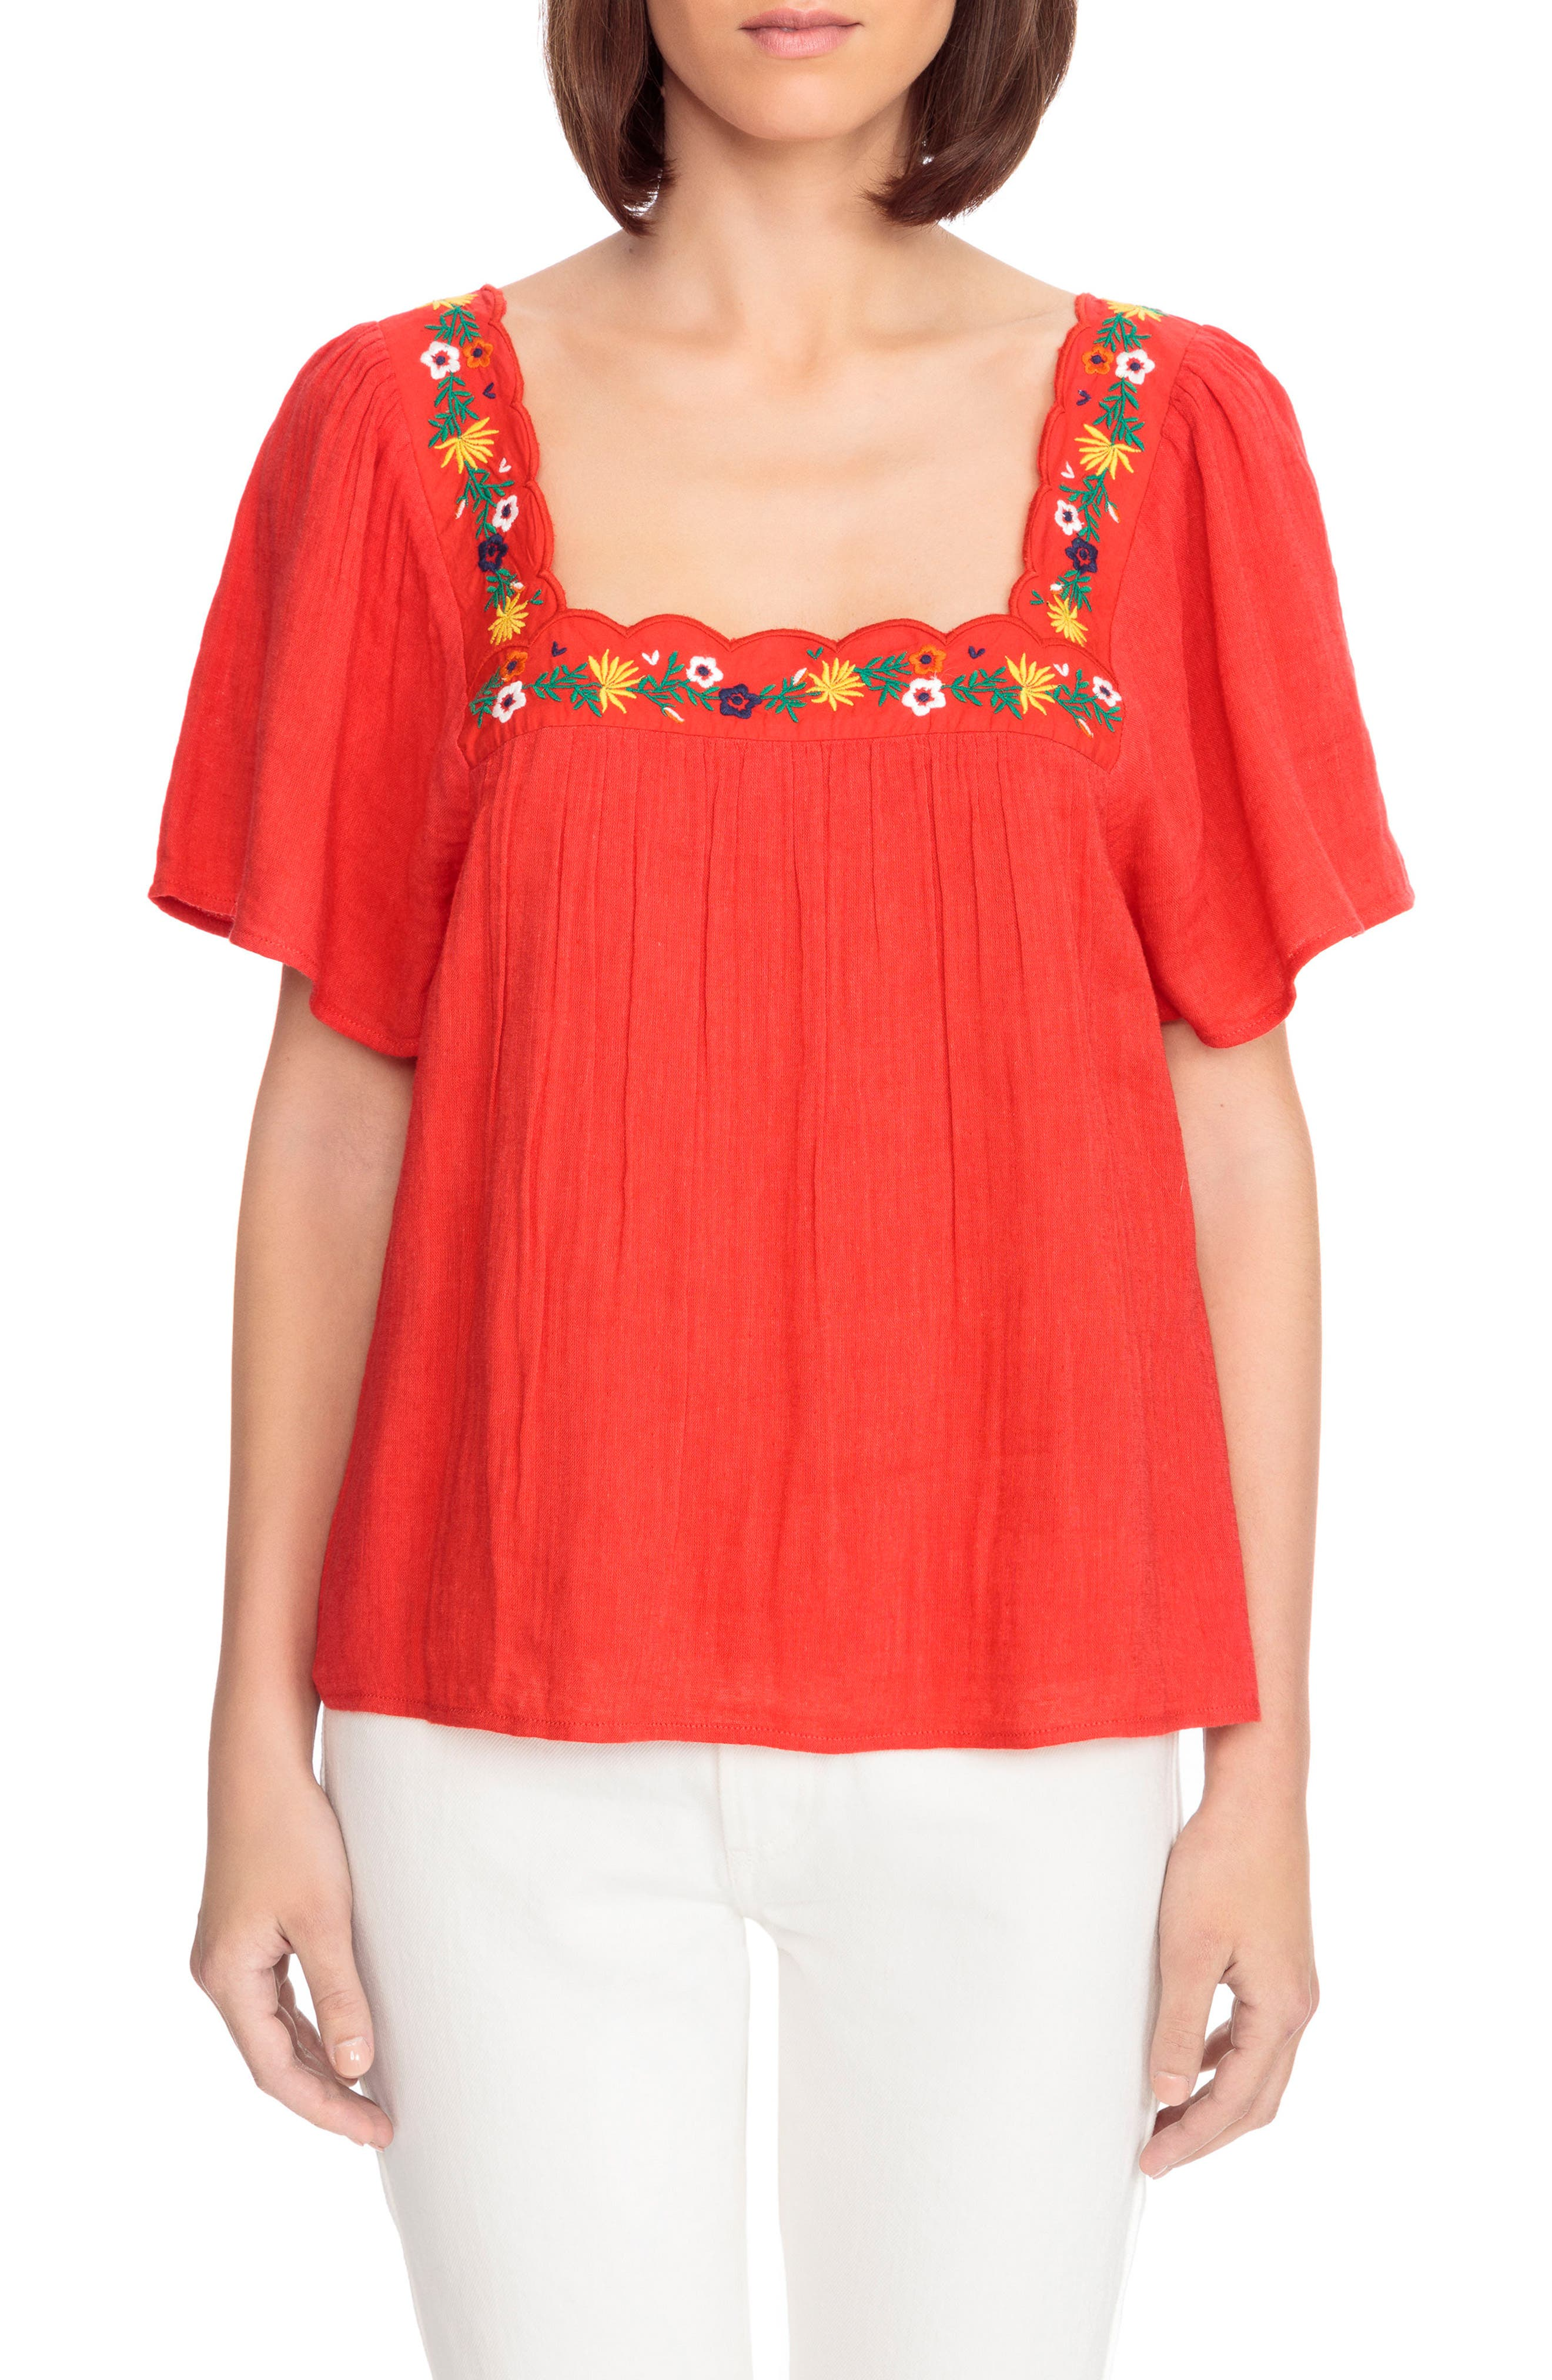 Bea Scalloped Top,                         Main,                         color, Coral Red